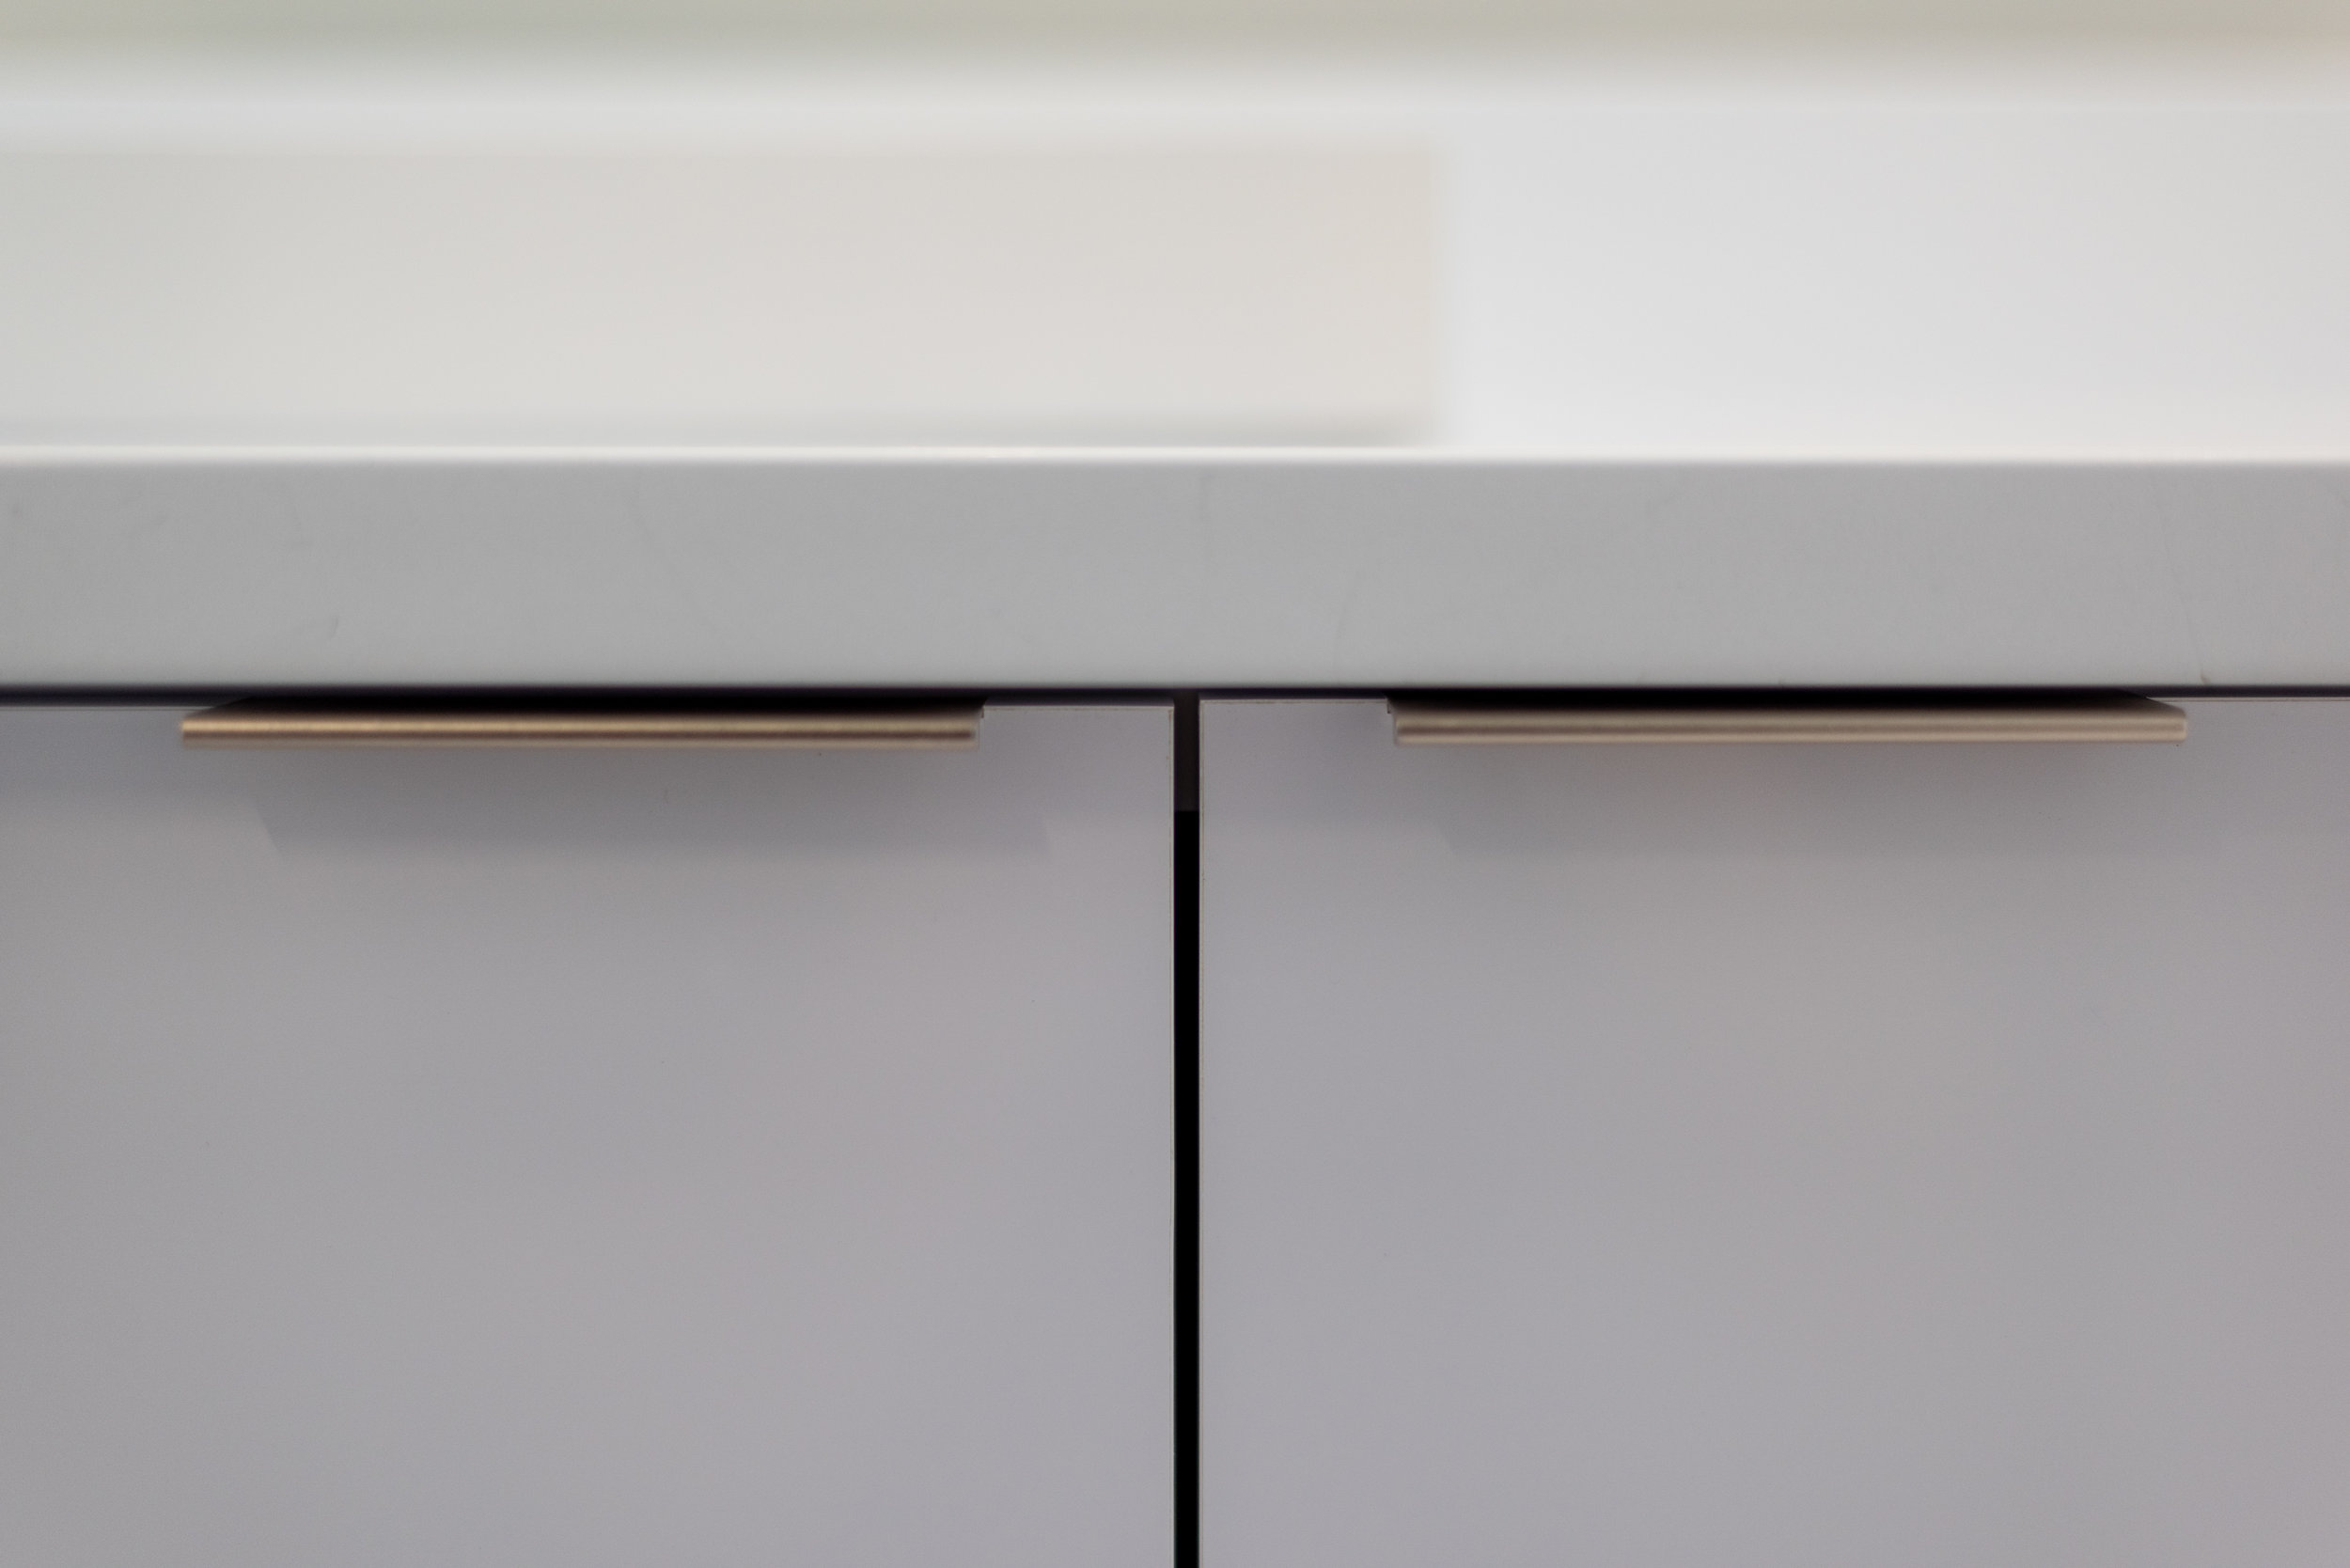 Concealed Pull Handles